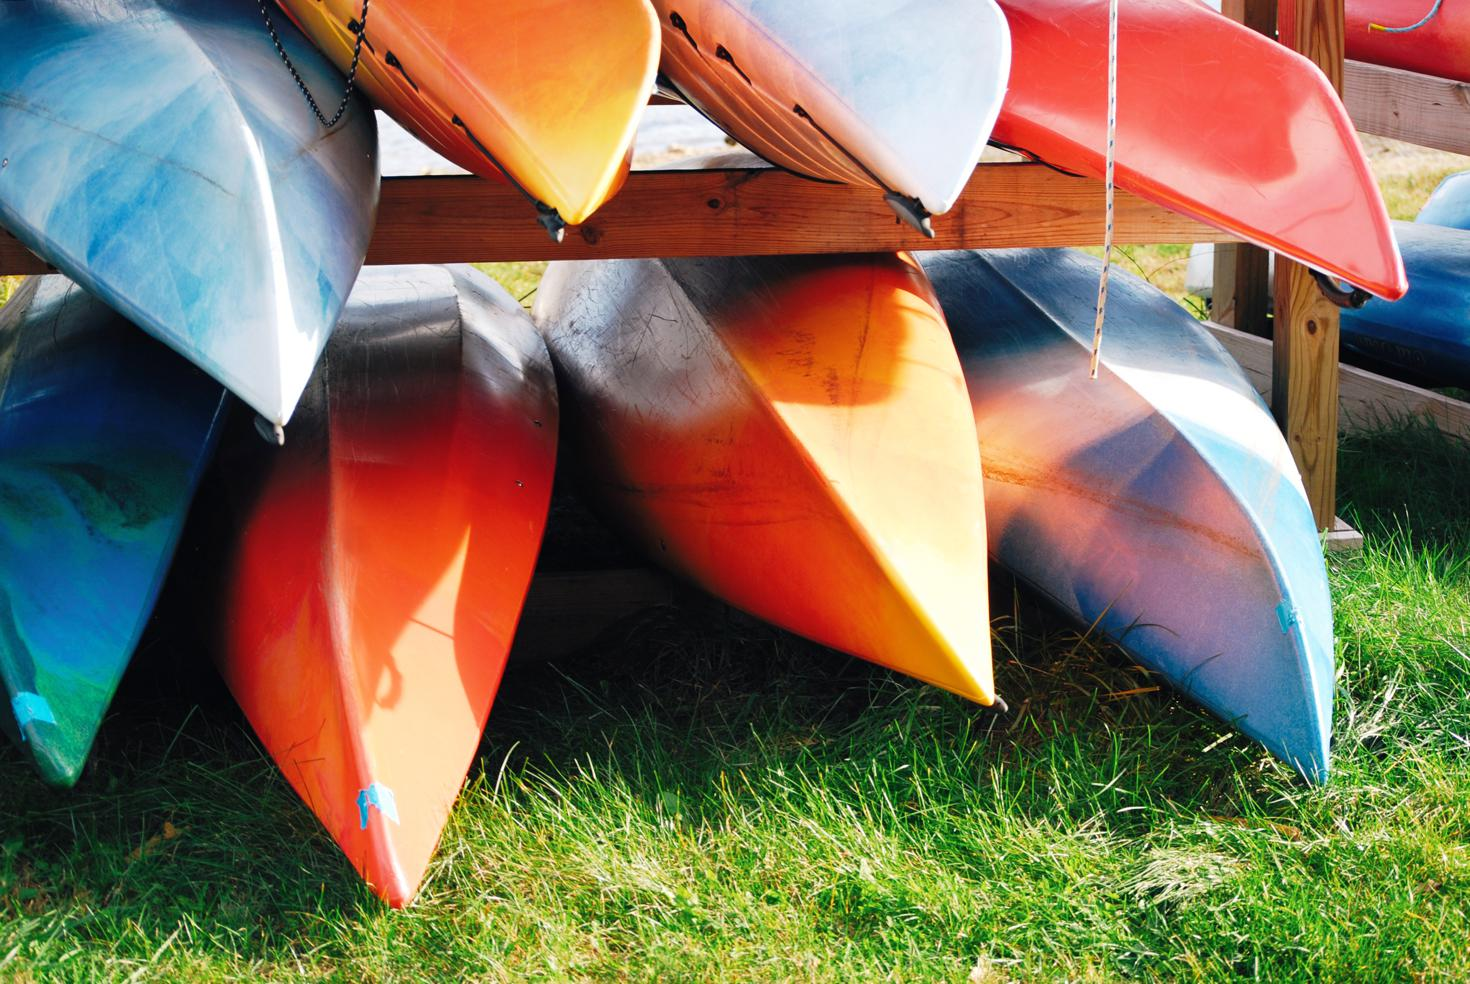 storing your personal boats at Affordable Family Storage